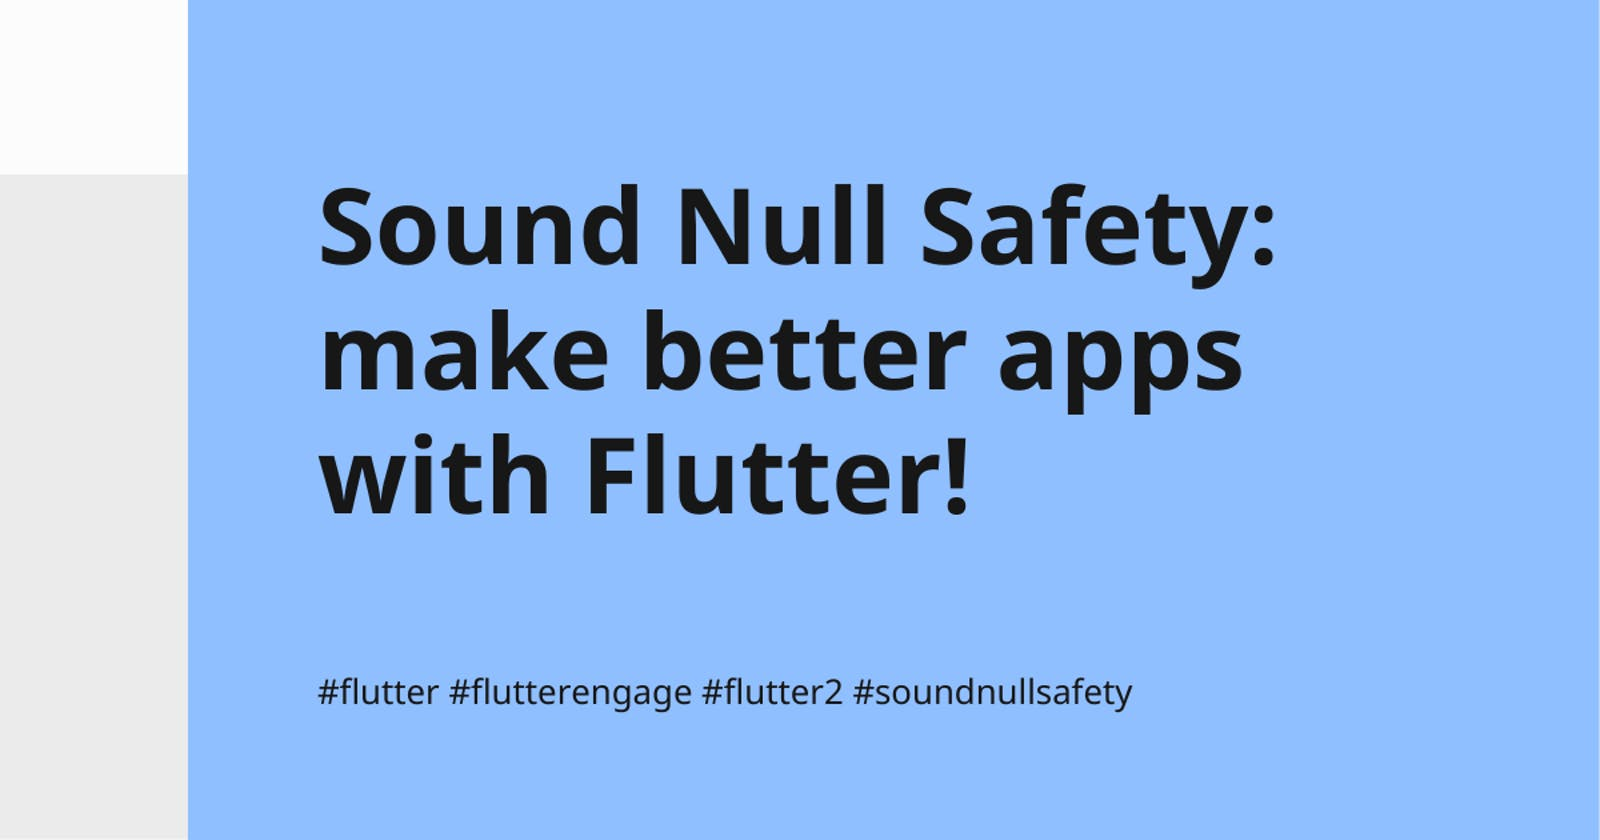 Sound Null Safety: make better apps with Flutter!